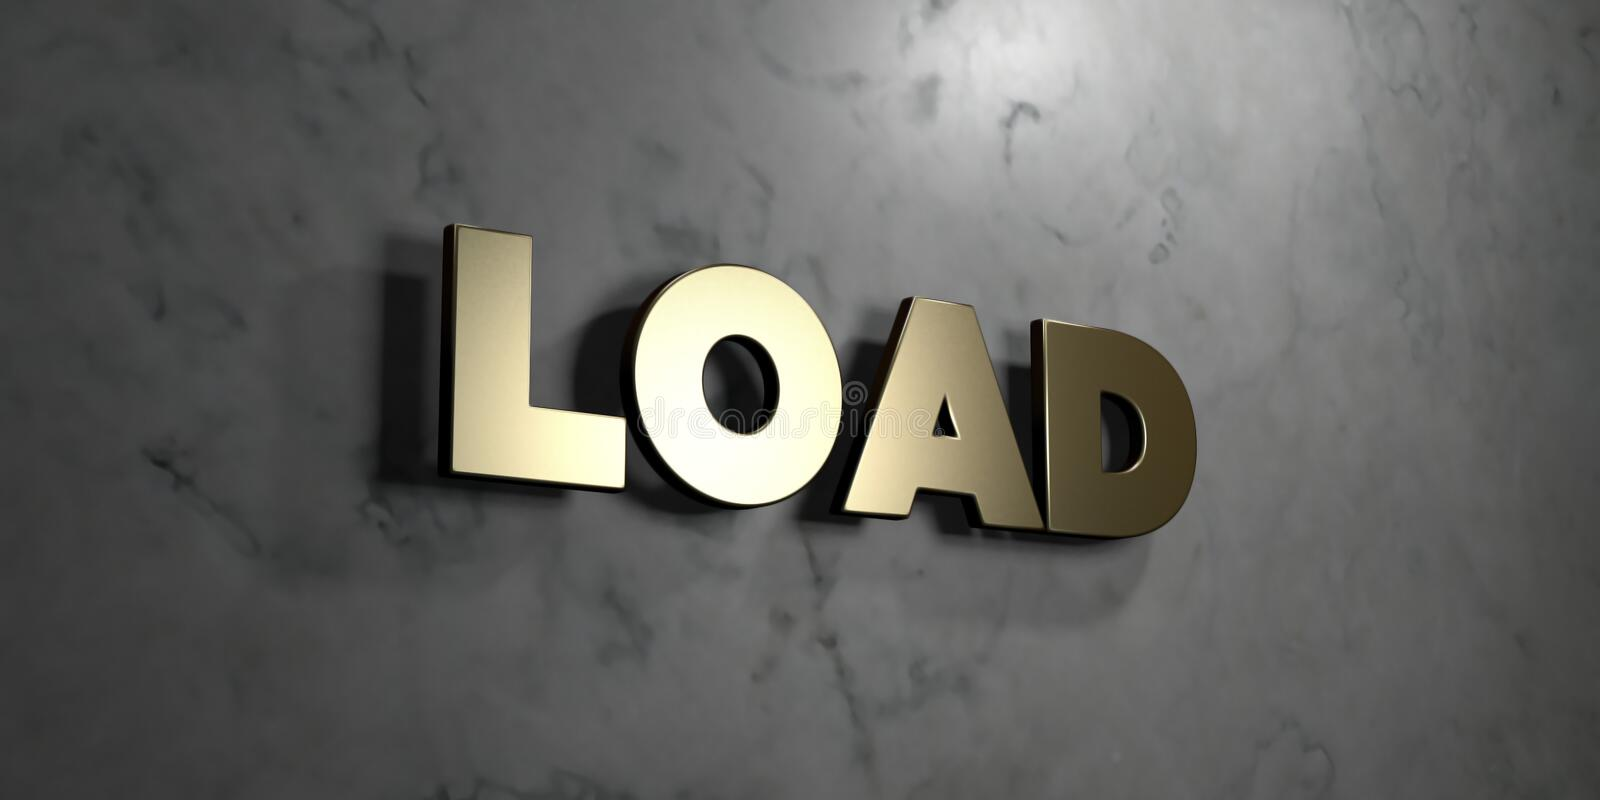 Load - Gold sign mounted on glossy marble wall - 3D rendered royalty free stock illustration. This image can be used for an online website banner ad or a print royalty free illustration